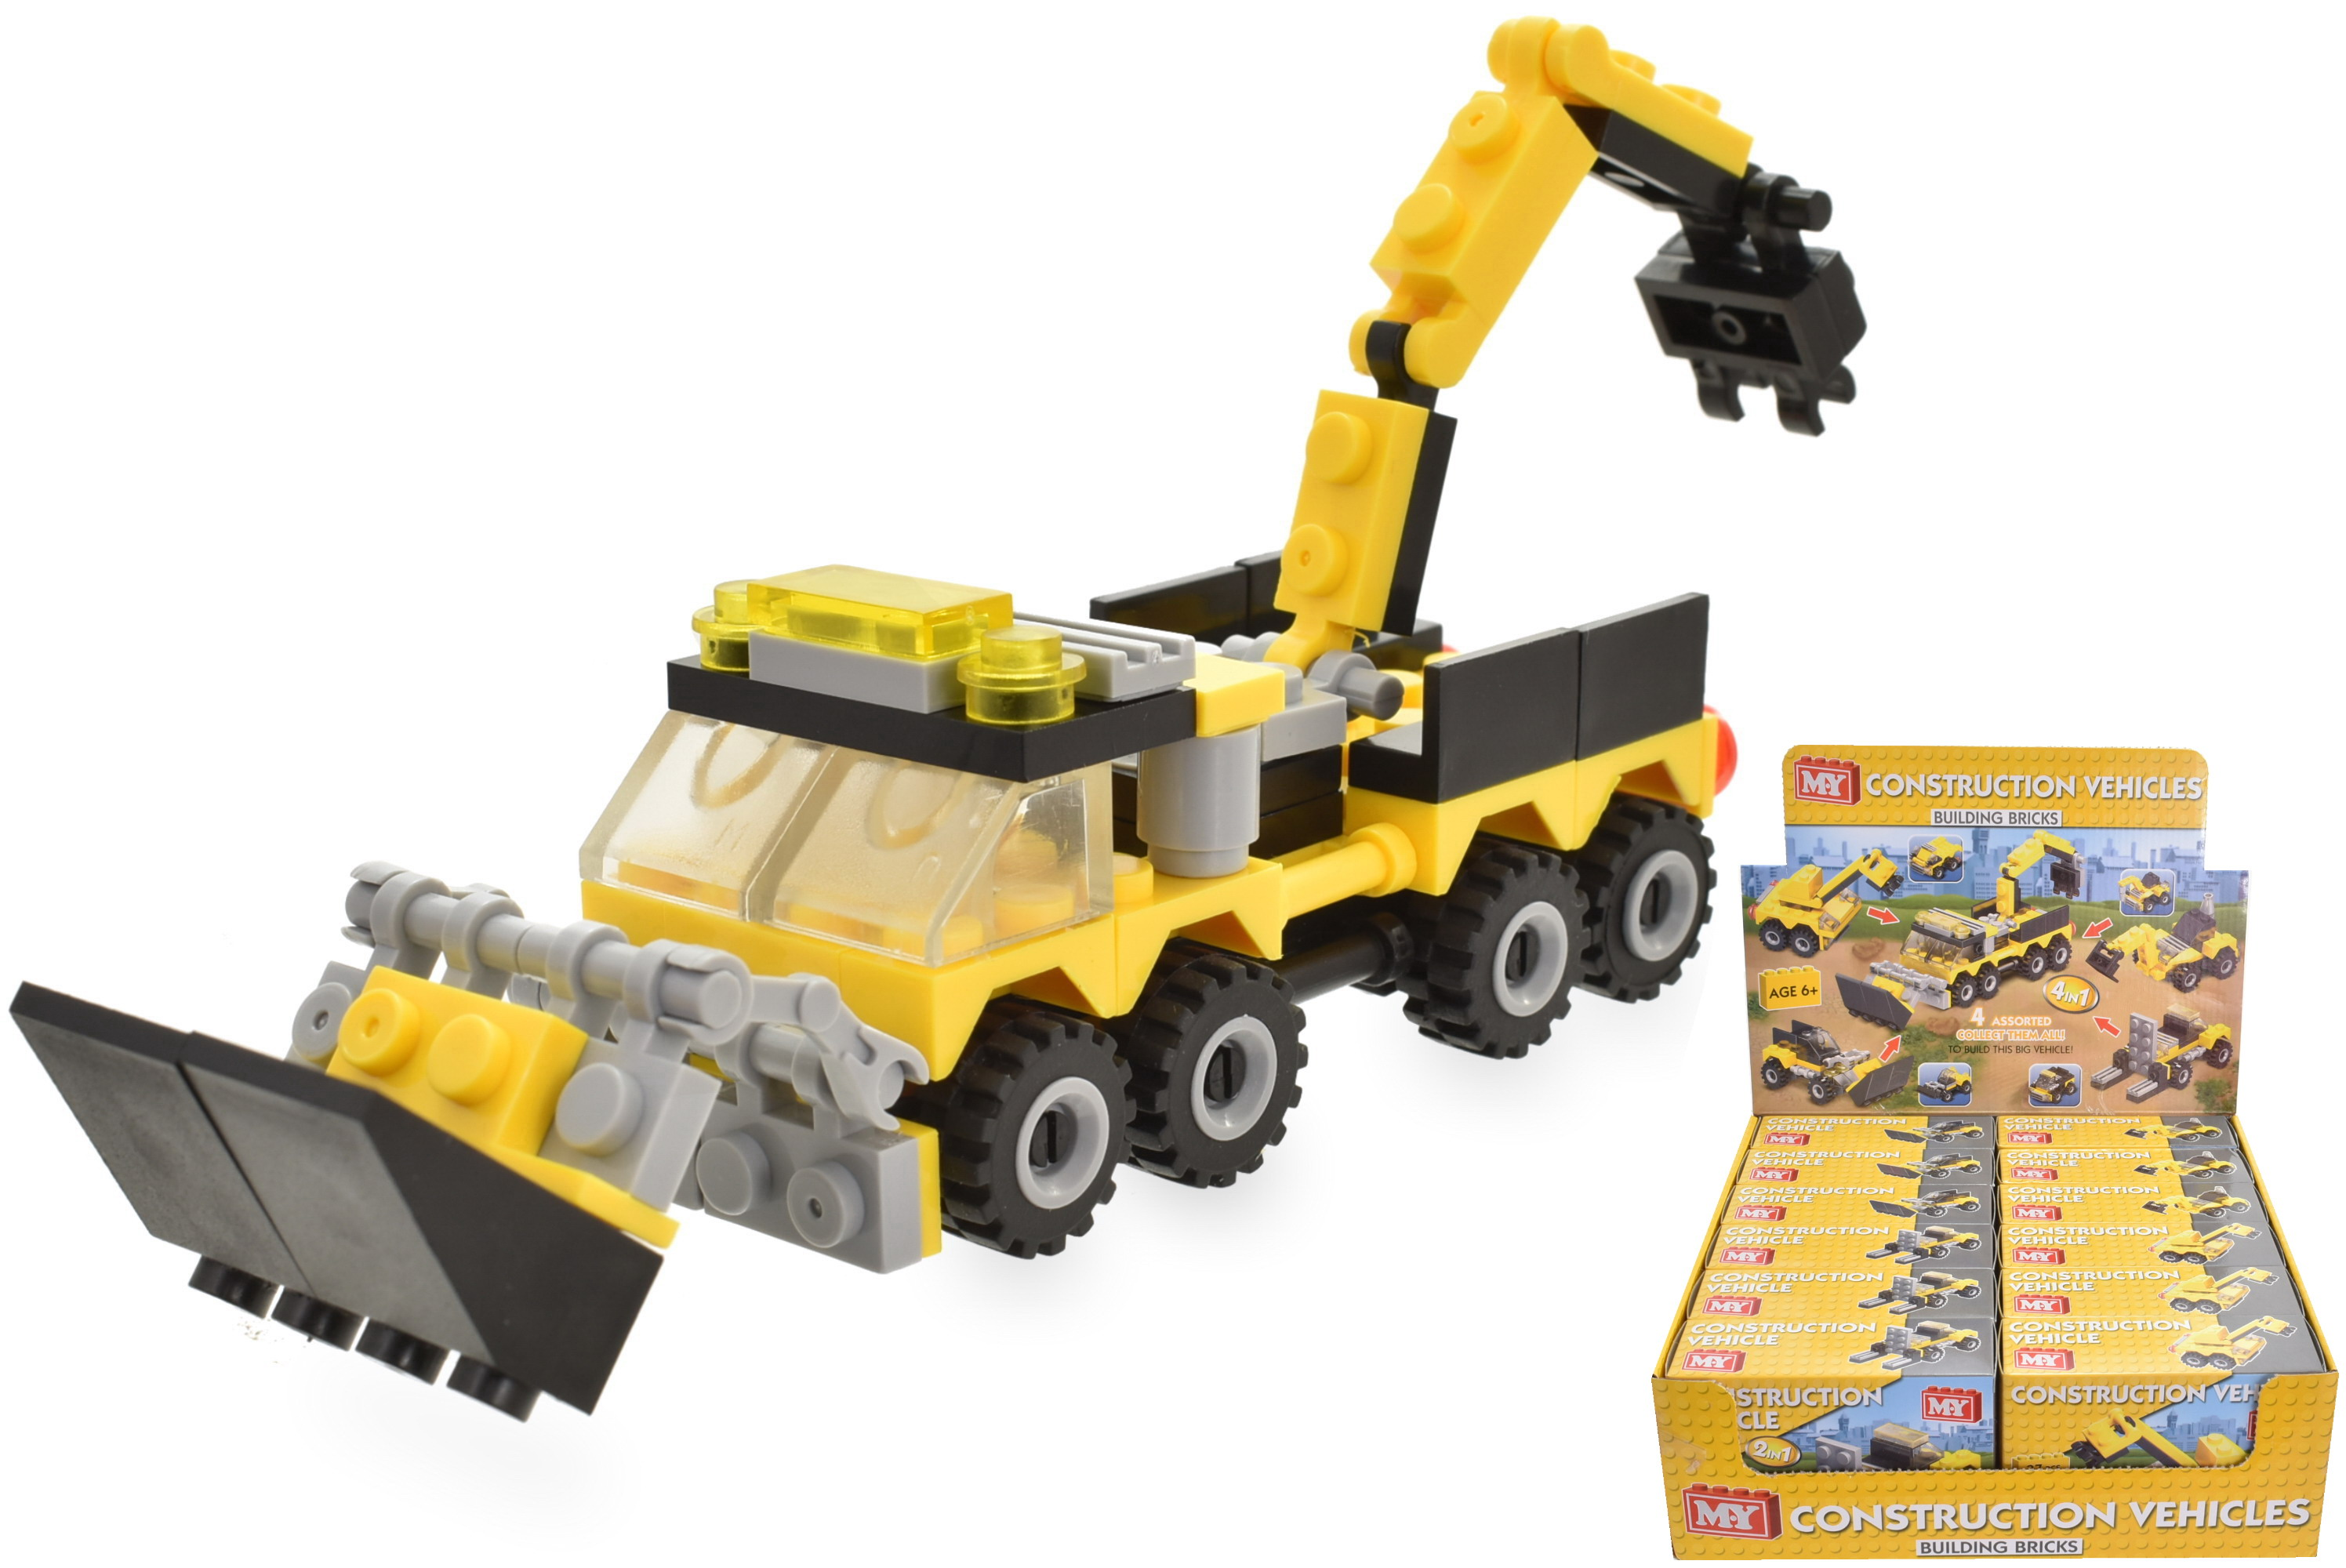 Construction Vehicle (4 Asst) Brick Sets In Colour Box